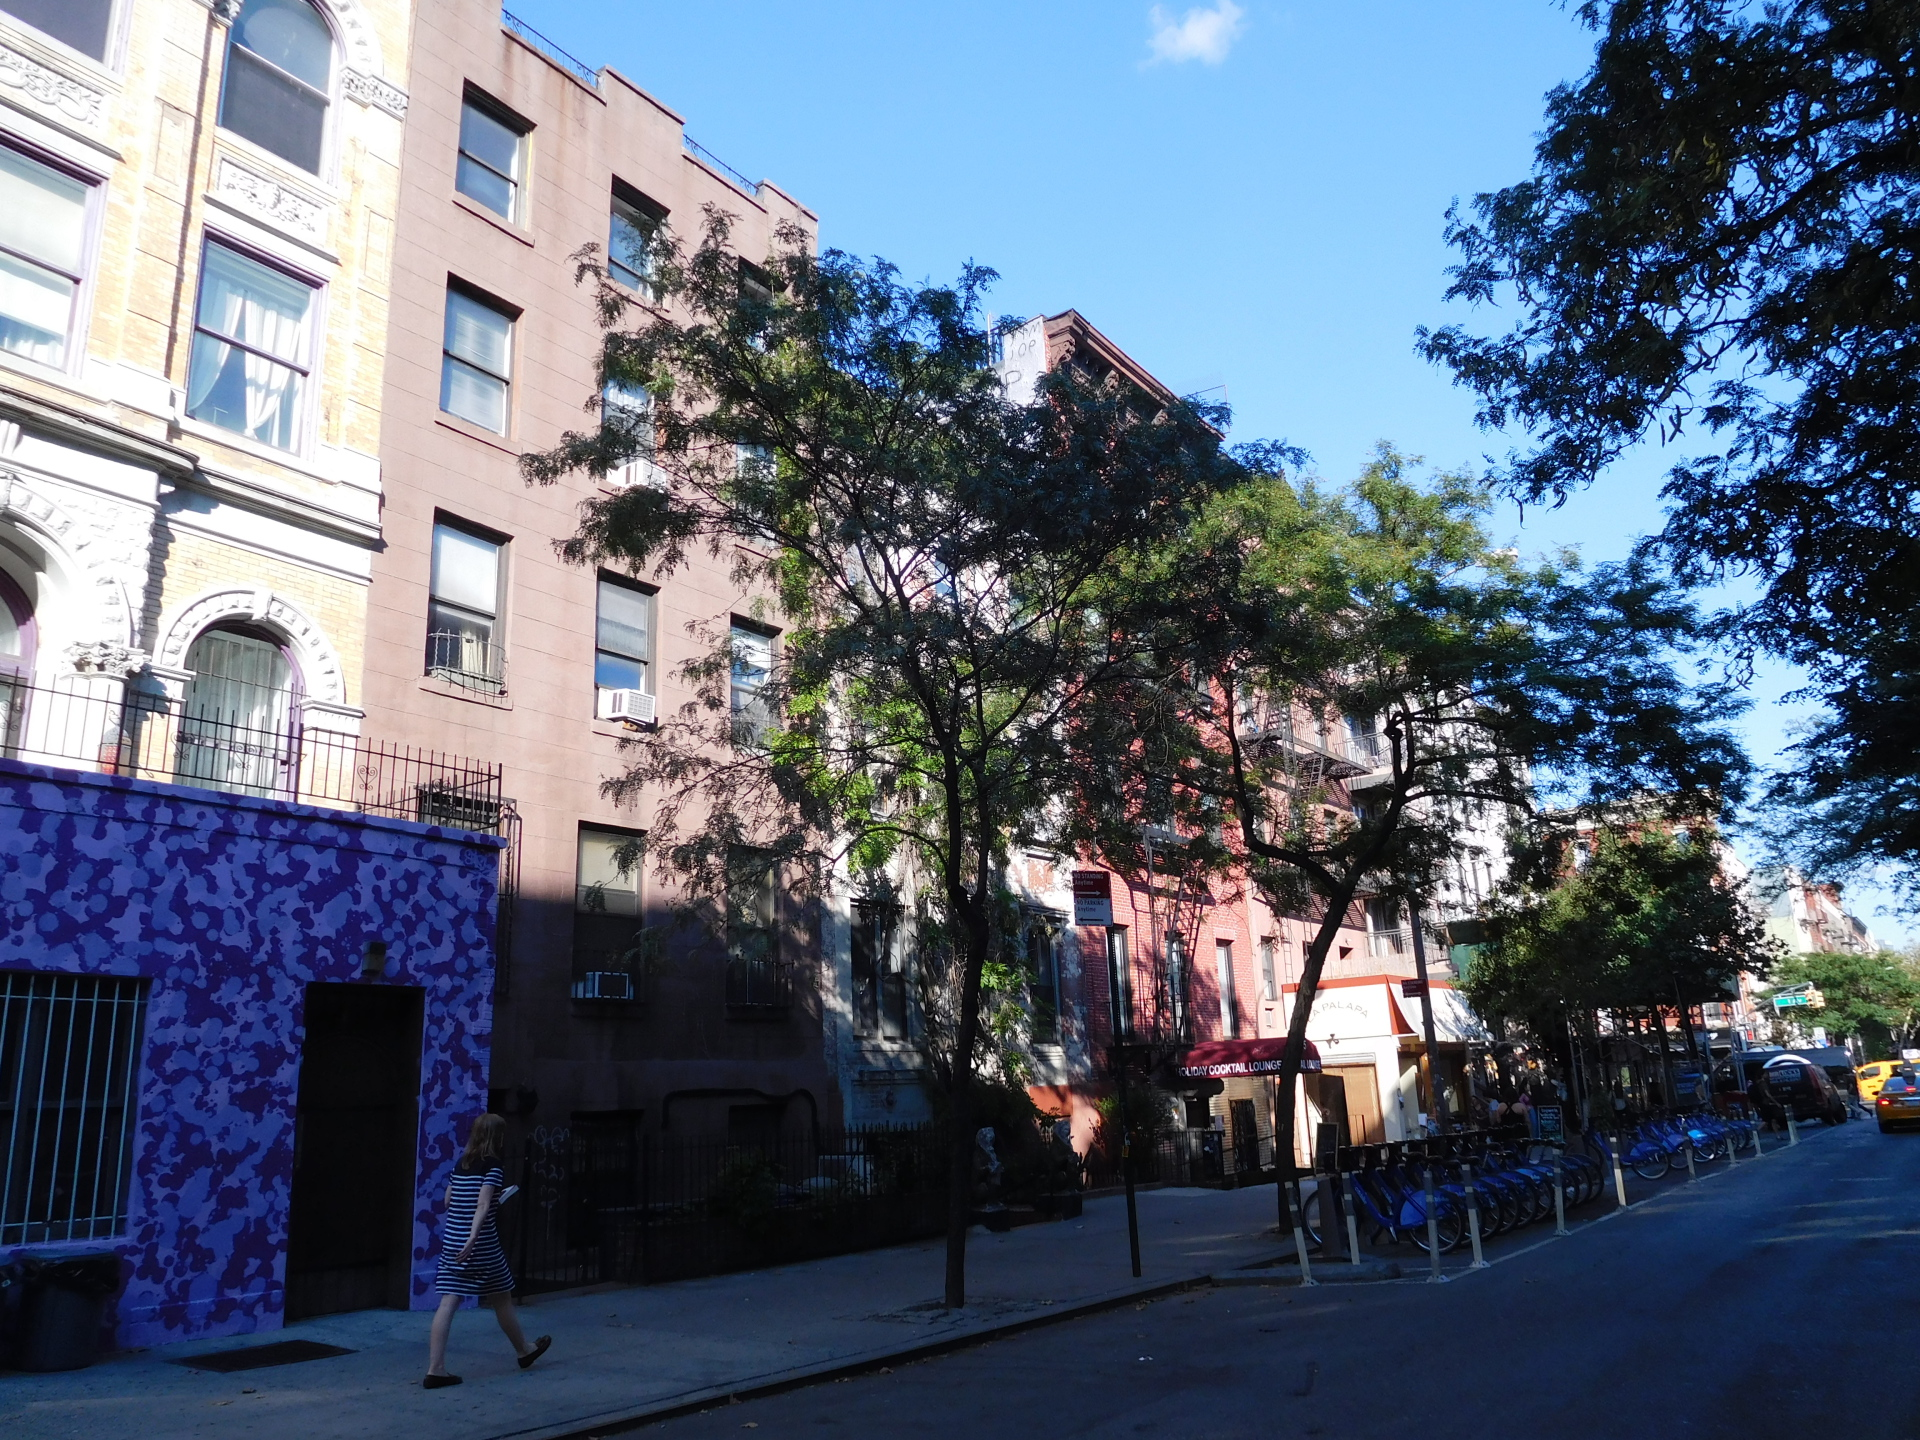 Apartment Building on St. Marks Place (8th Street)